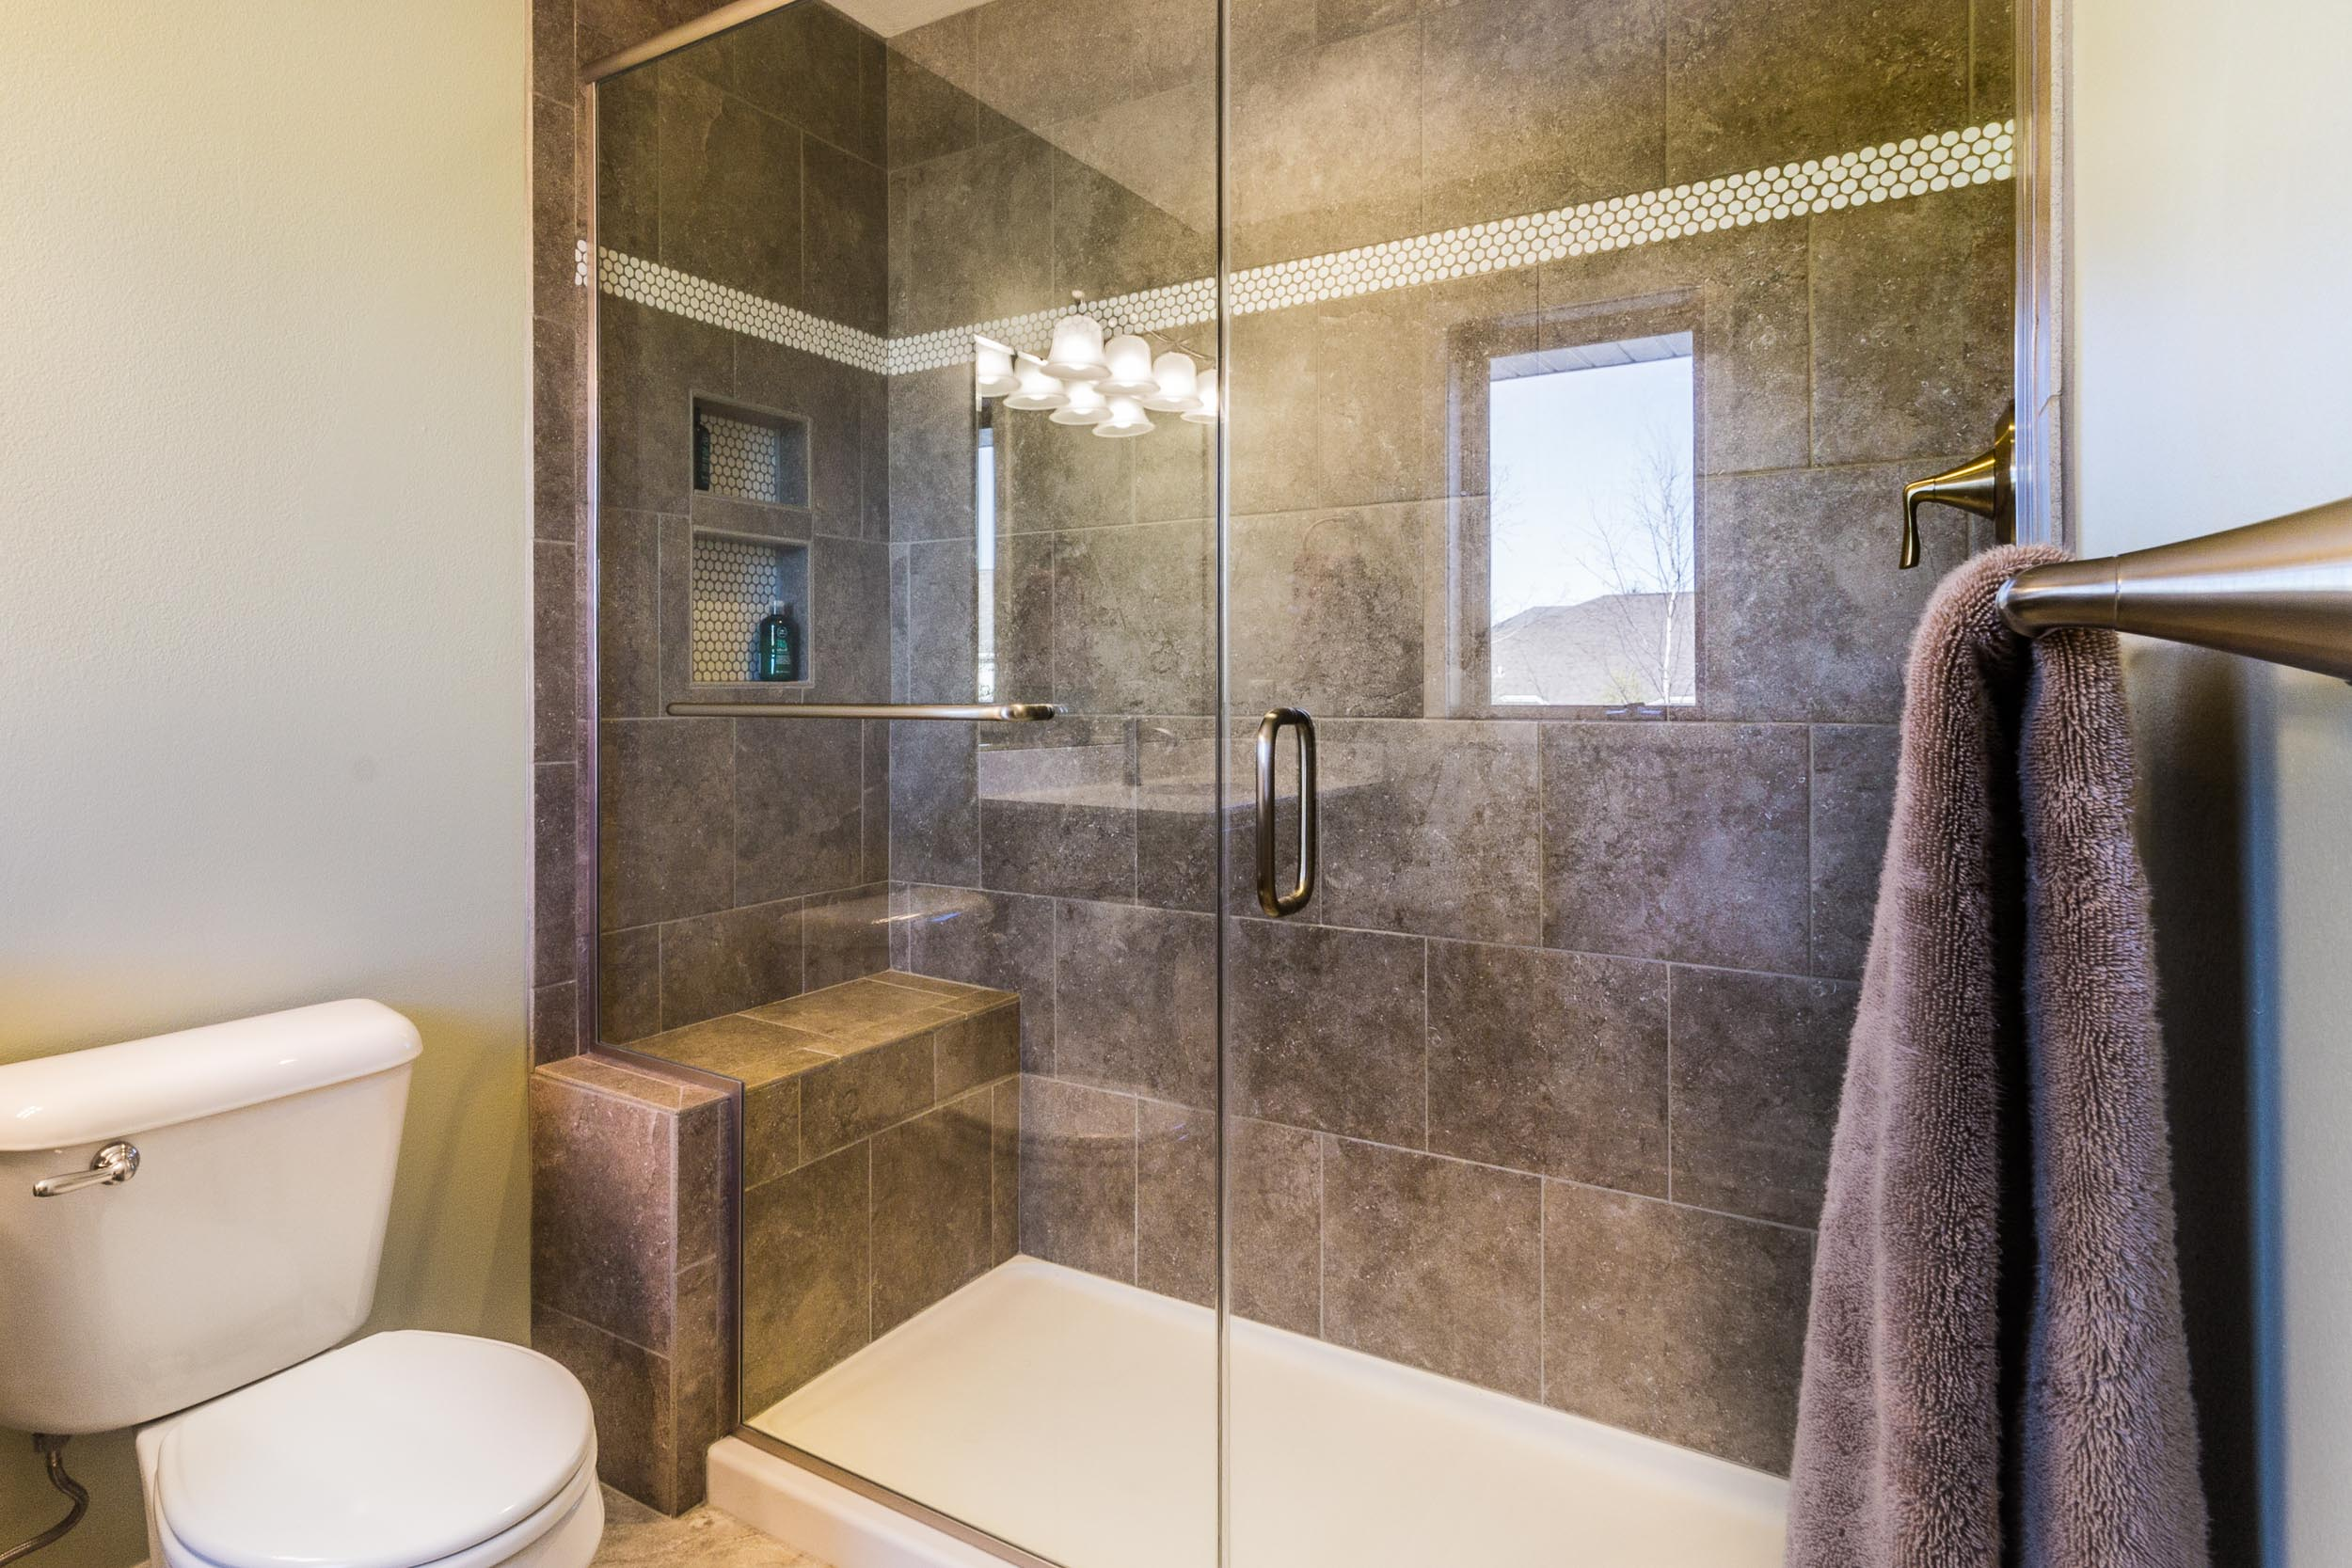 - The same tile used in the horizontal stripe is repeated as the back of the shower niche at this home in Waunakee.